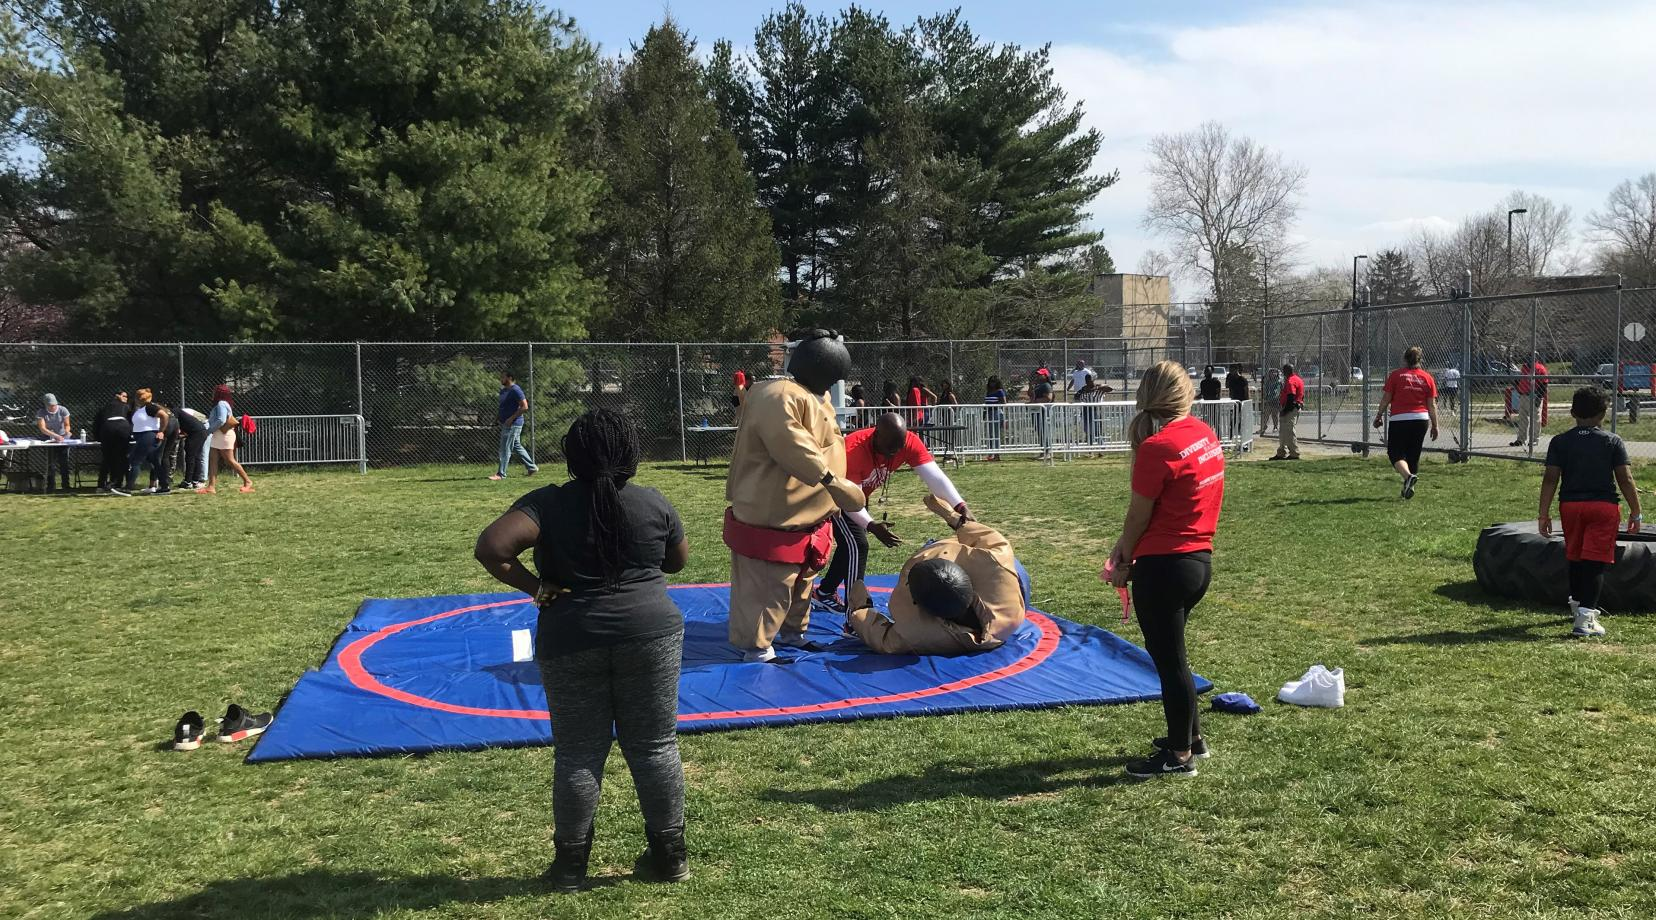 Sumo wrestling was one of the world activities that took place during the Spring Fling Carnival.